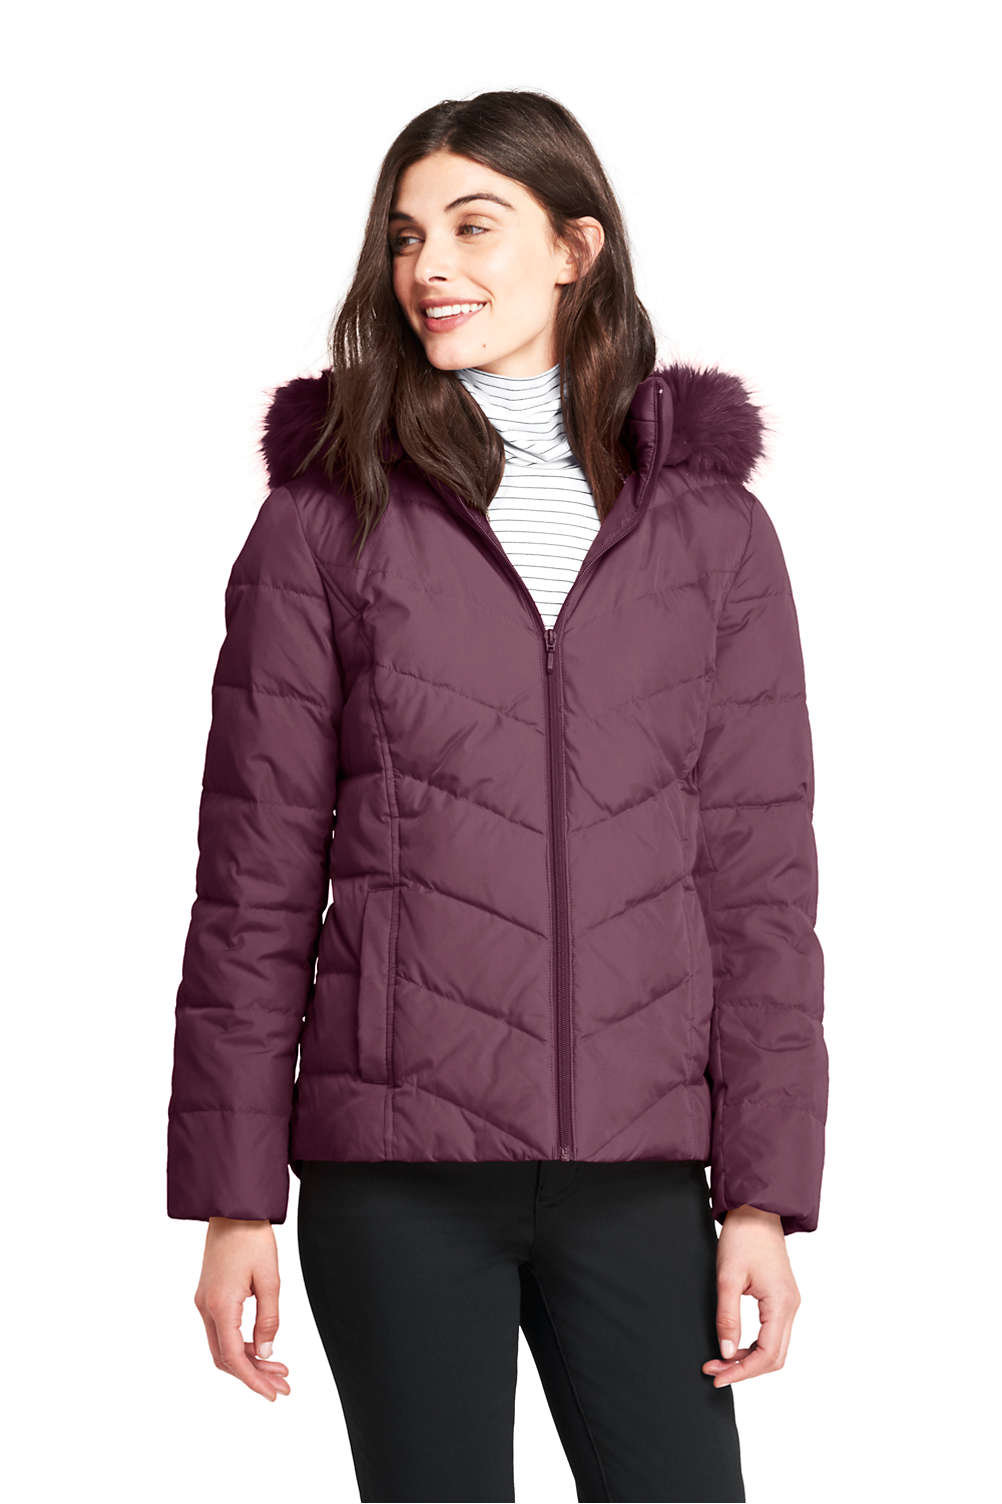 025b024c2 Women's Down Puffer Jacket With Faux Fur Hood from Lands' End